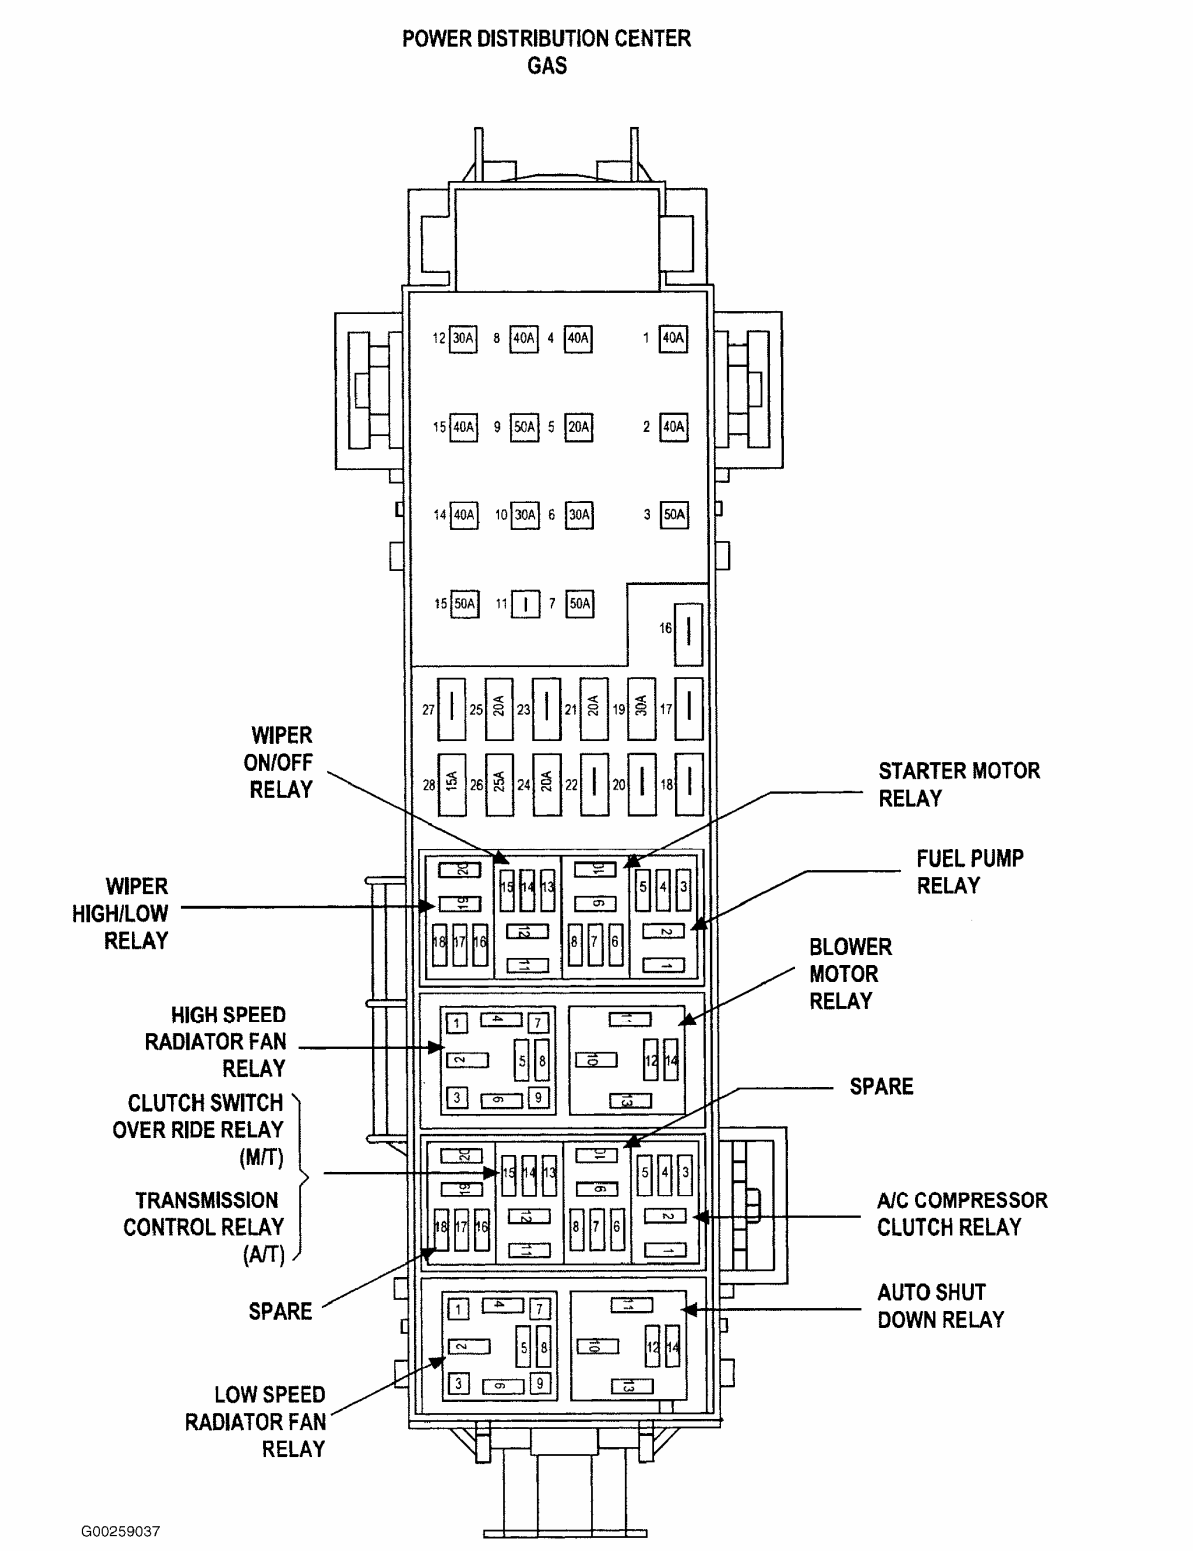 1995 gmc sierra fuse diagram